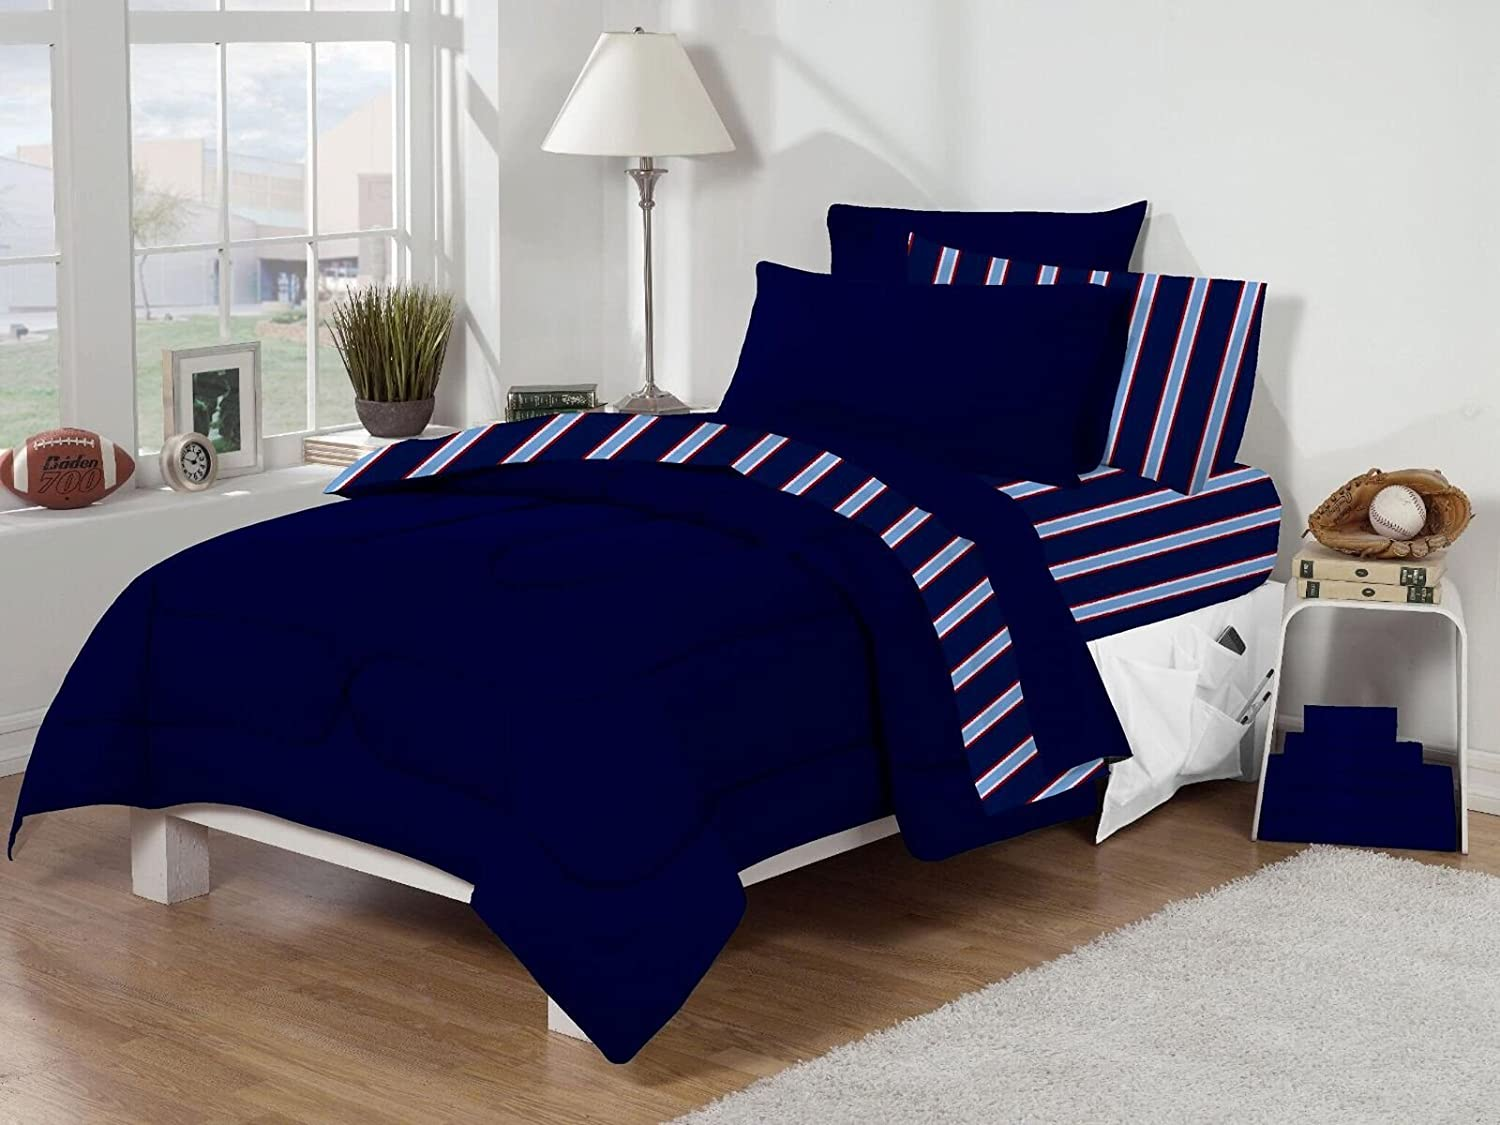 Marvelous Twin XL Dorm Room Bedding Set   Navy Stripe Part 24